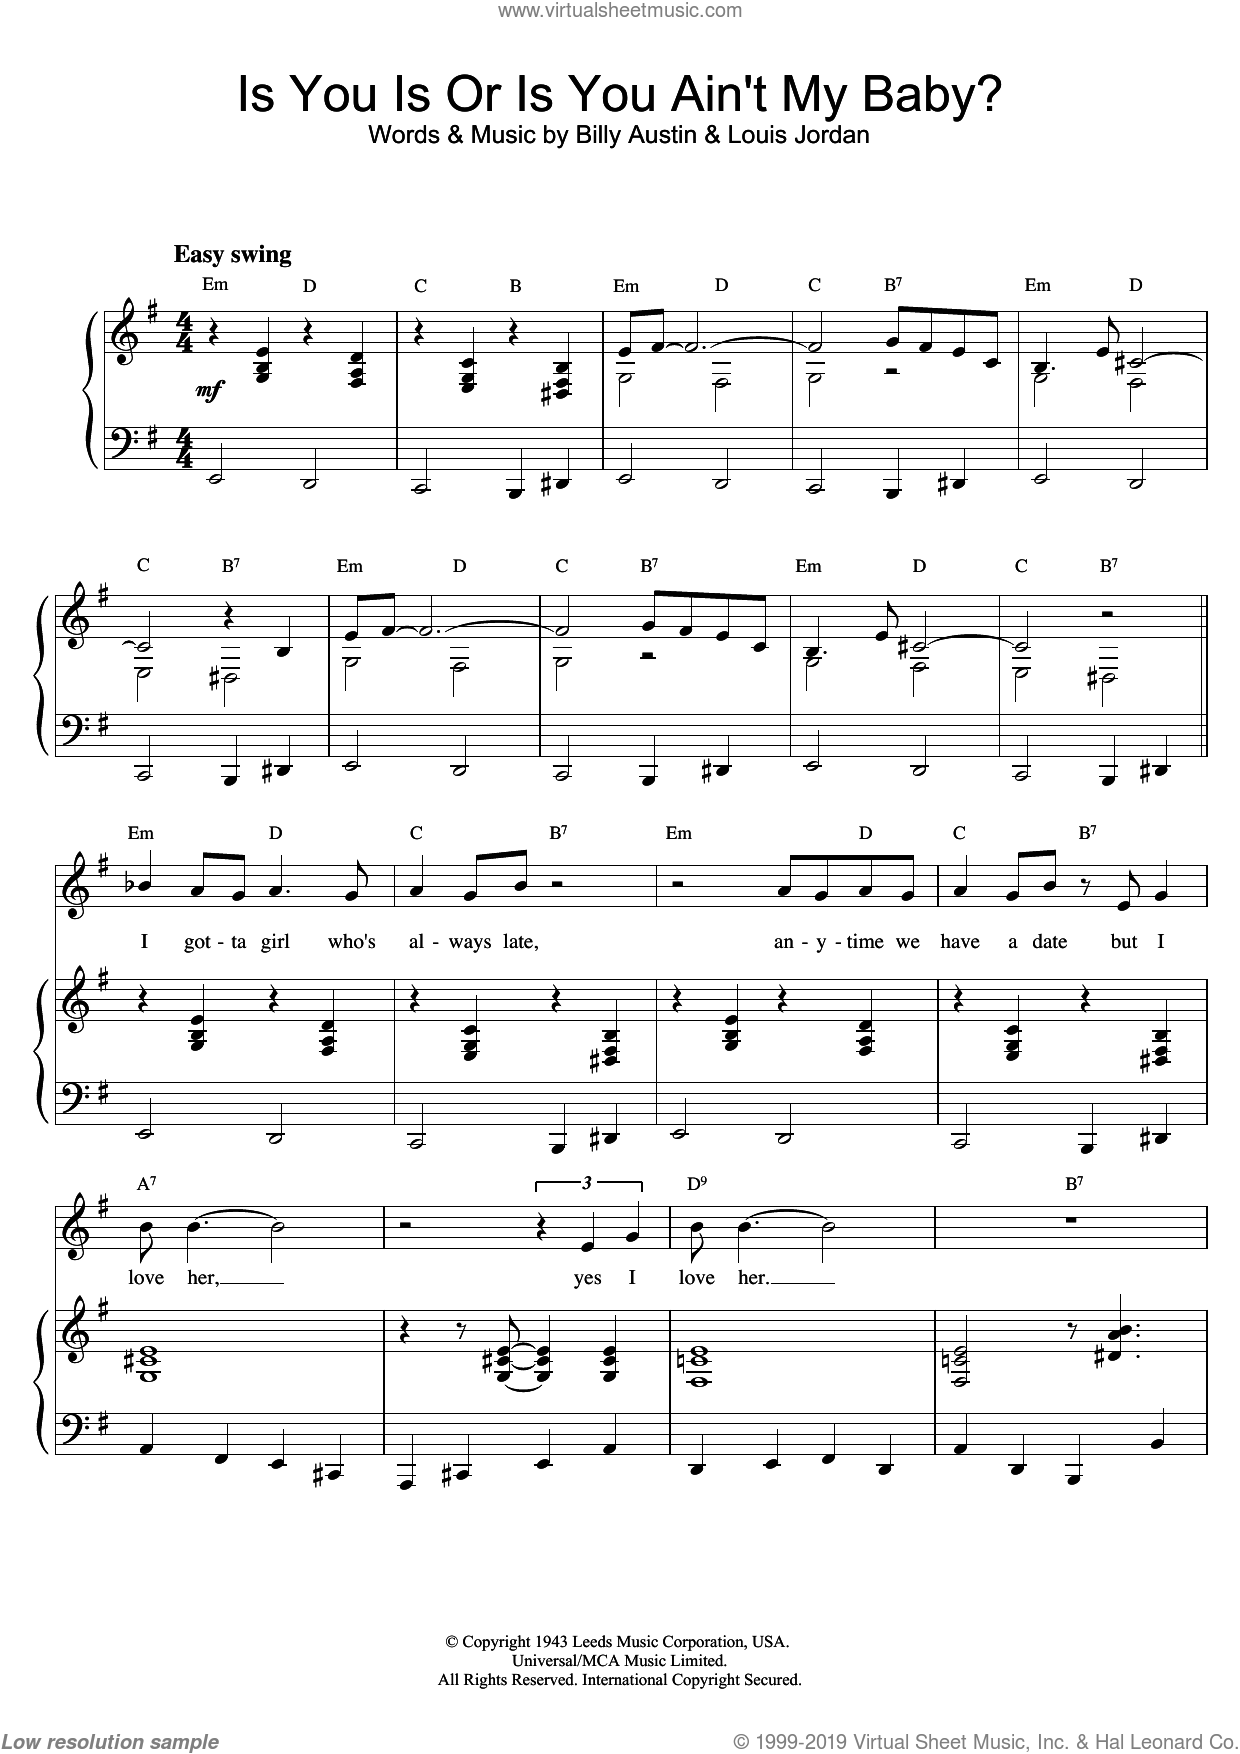 Is You Is Or Is You Ain't (My Baby)? sheet music for voice, piano or guitar by Louis Armstrong, Austin,Billy and Louis Jordan, intermediate skill level